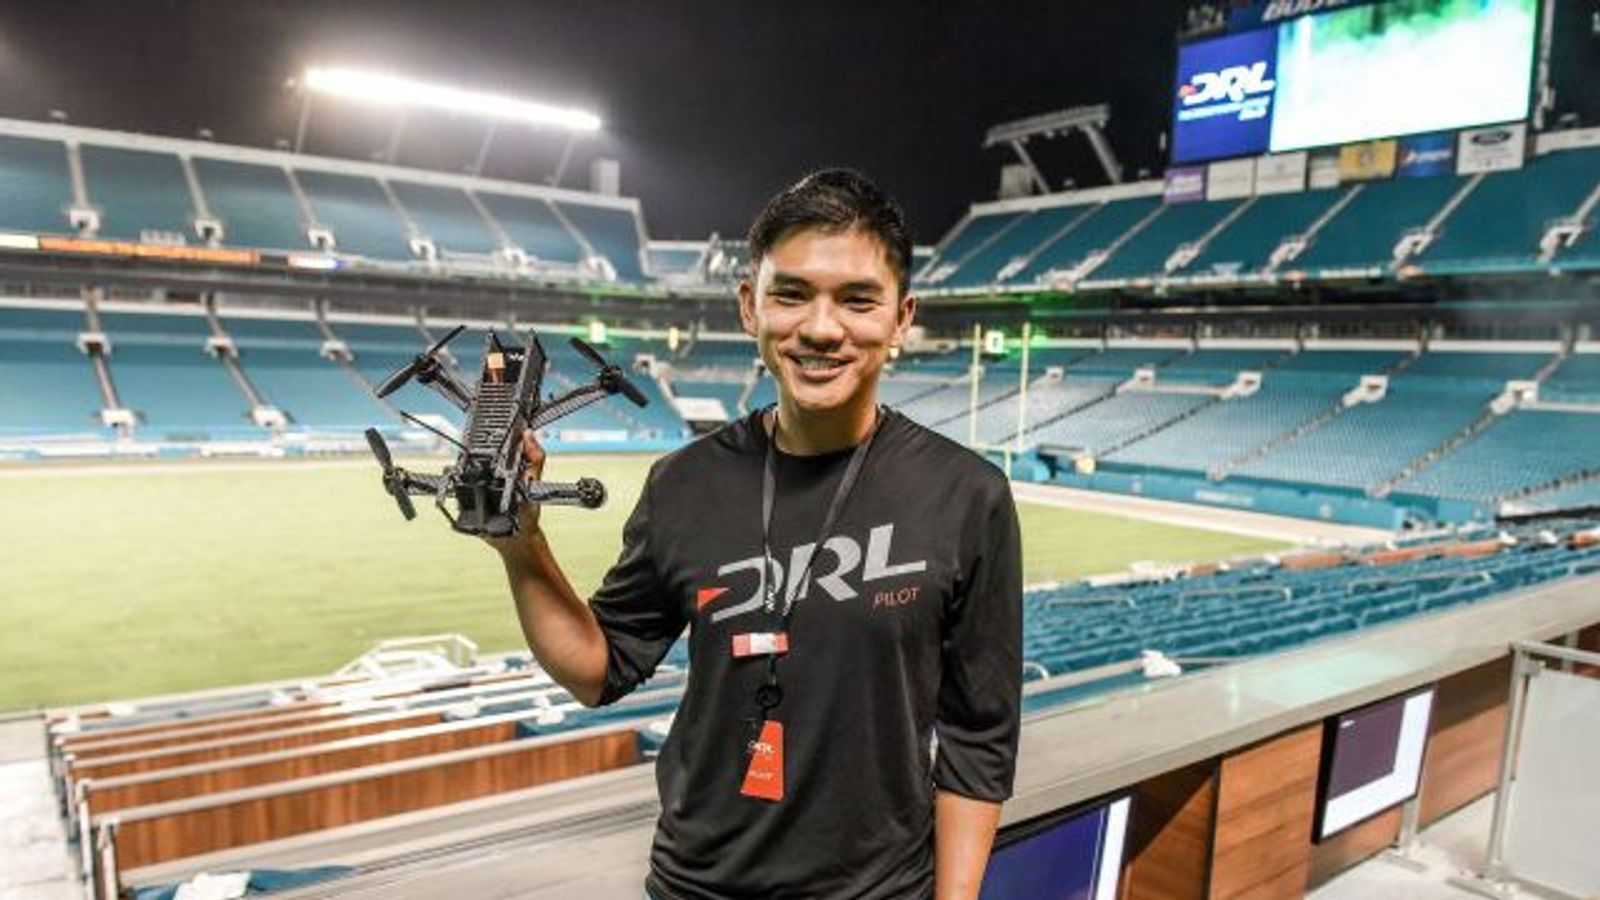 Drone Racing is coming to Sky Sports Mix